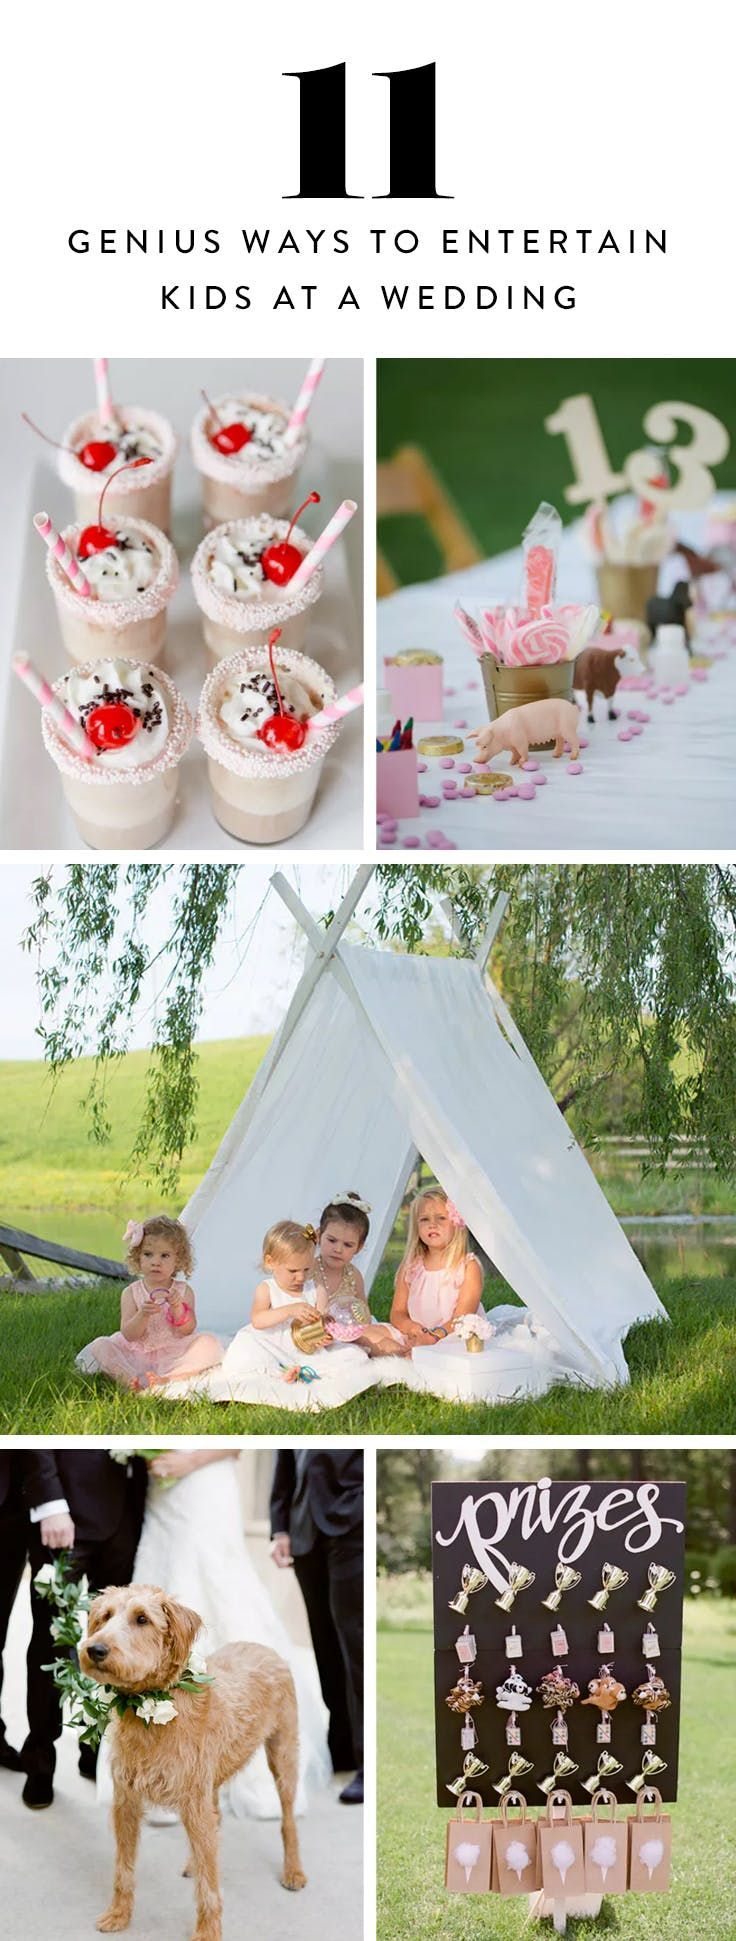 11 Genius Ways to Entertain Kids at a Wedding is part of Wedding with kids - From the open bar to the golden oldies, weddings are the ultimate feelgood party for grownups  But what's in it for the little ones  Keep your smallest guests not only occupied but delighted with these 11 fun ideas  RELATED 12 Nontraditional Wedding Trends That Will Make You Want to Redo